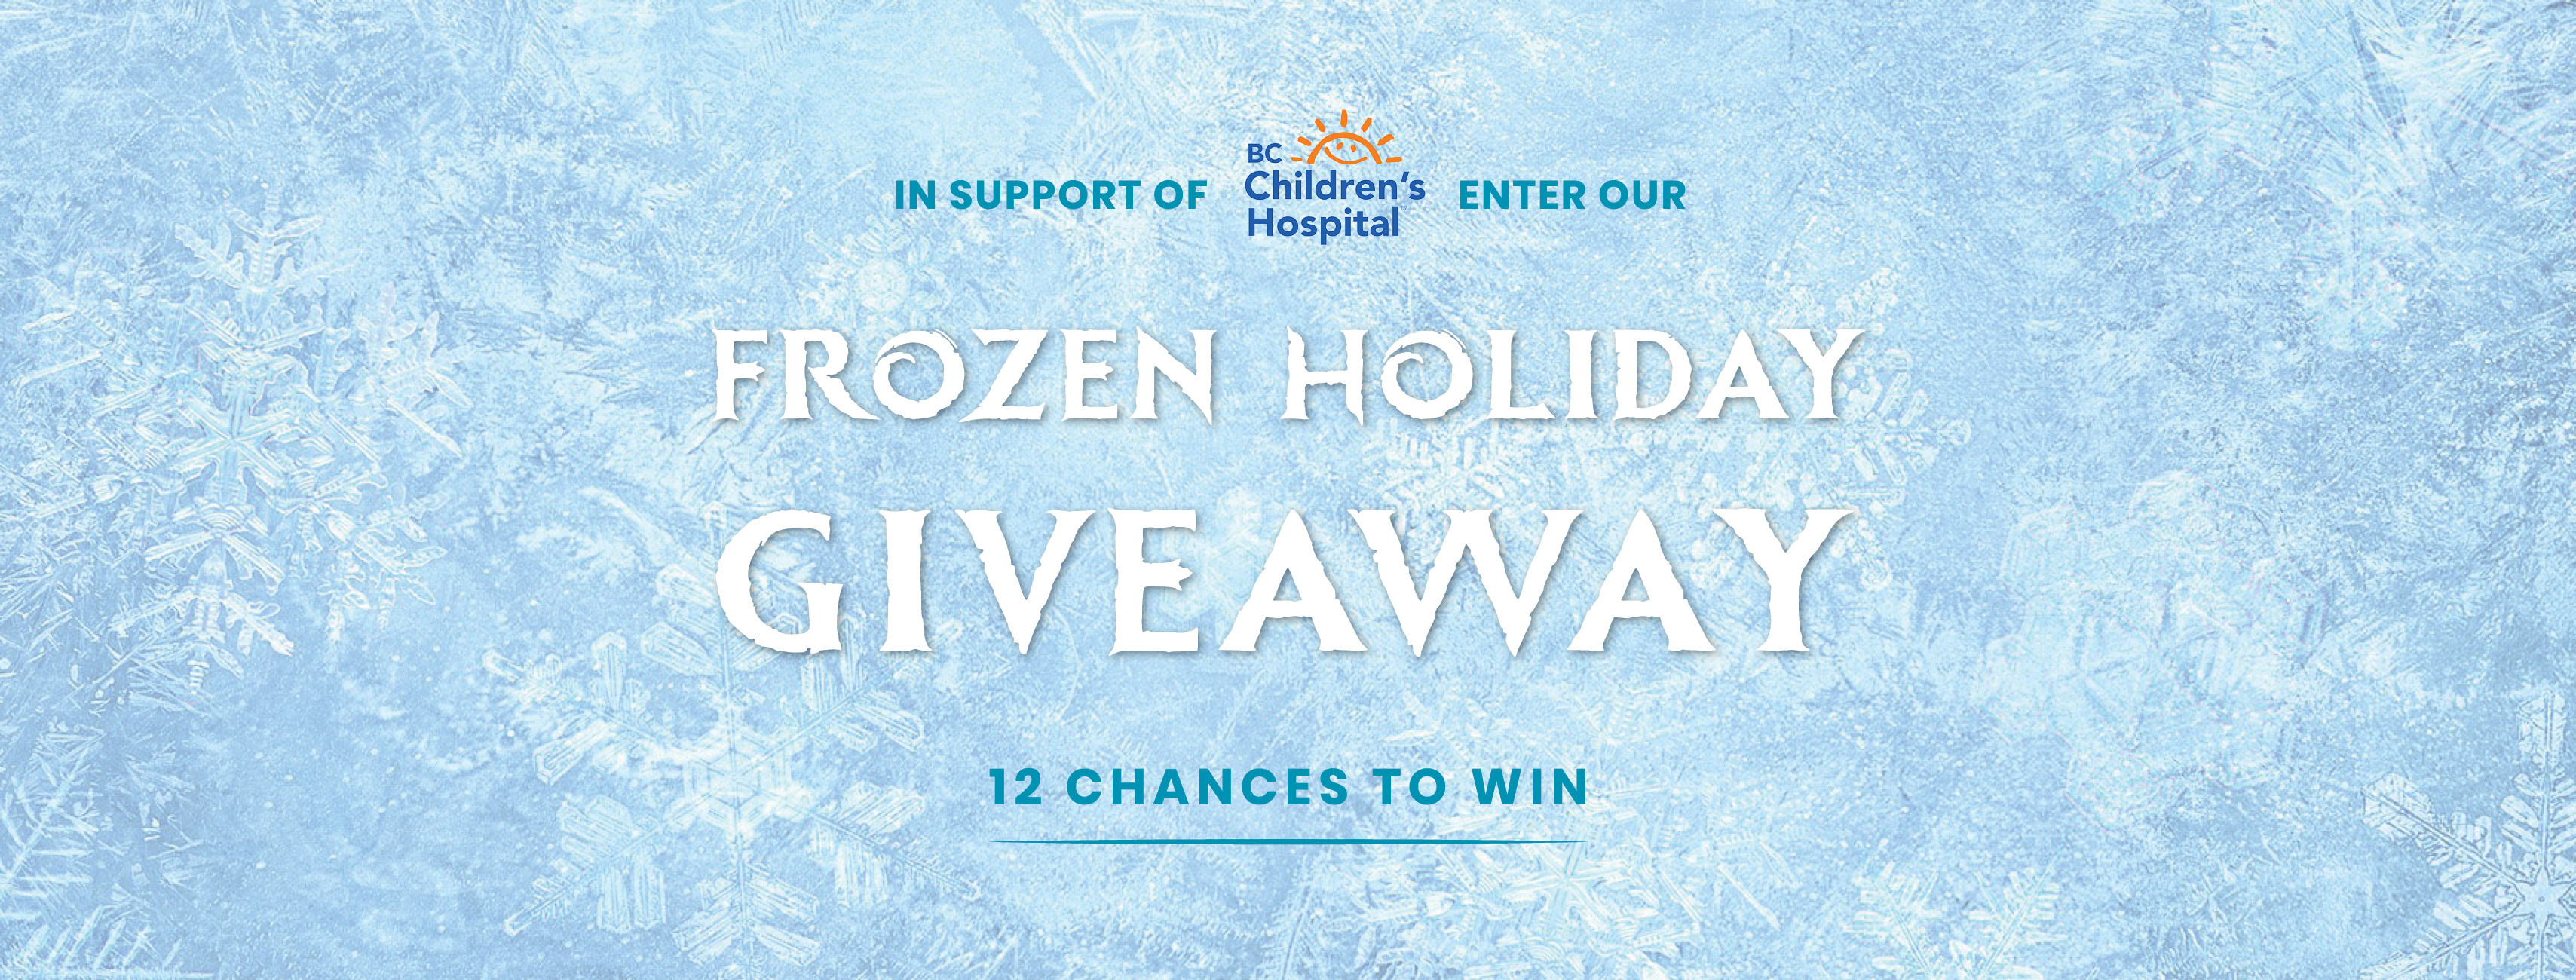 Frozen Holiday Giveaway Teaser